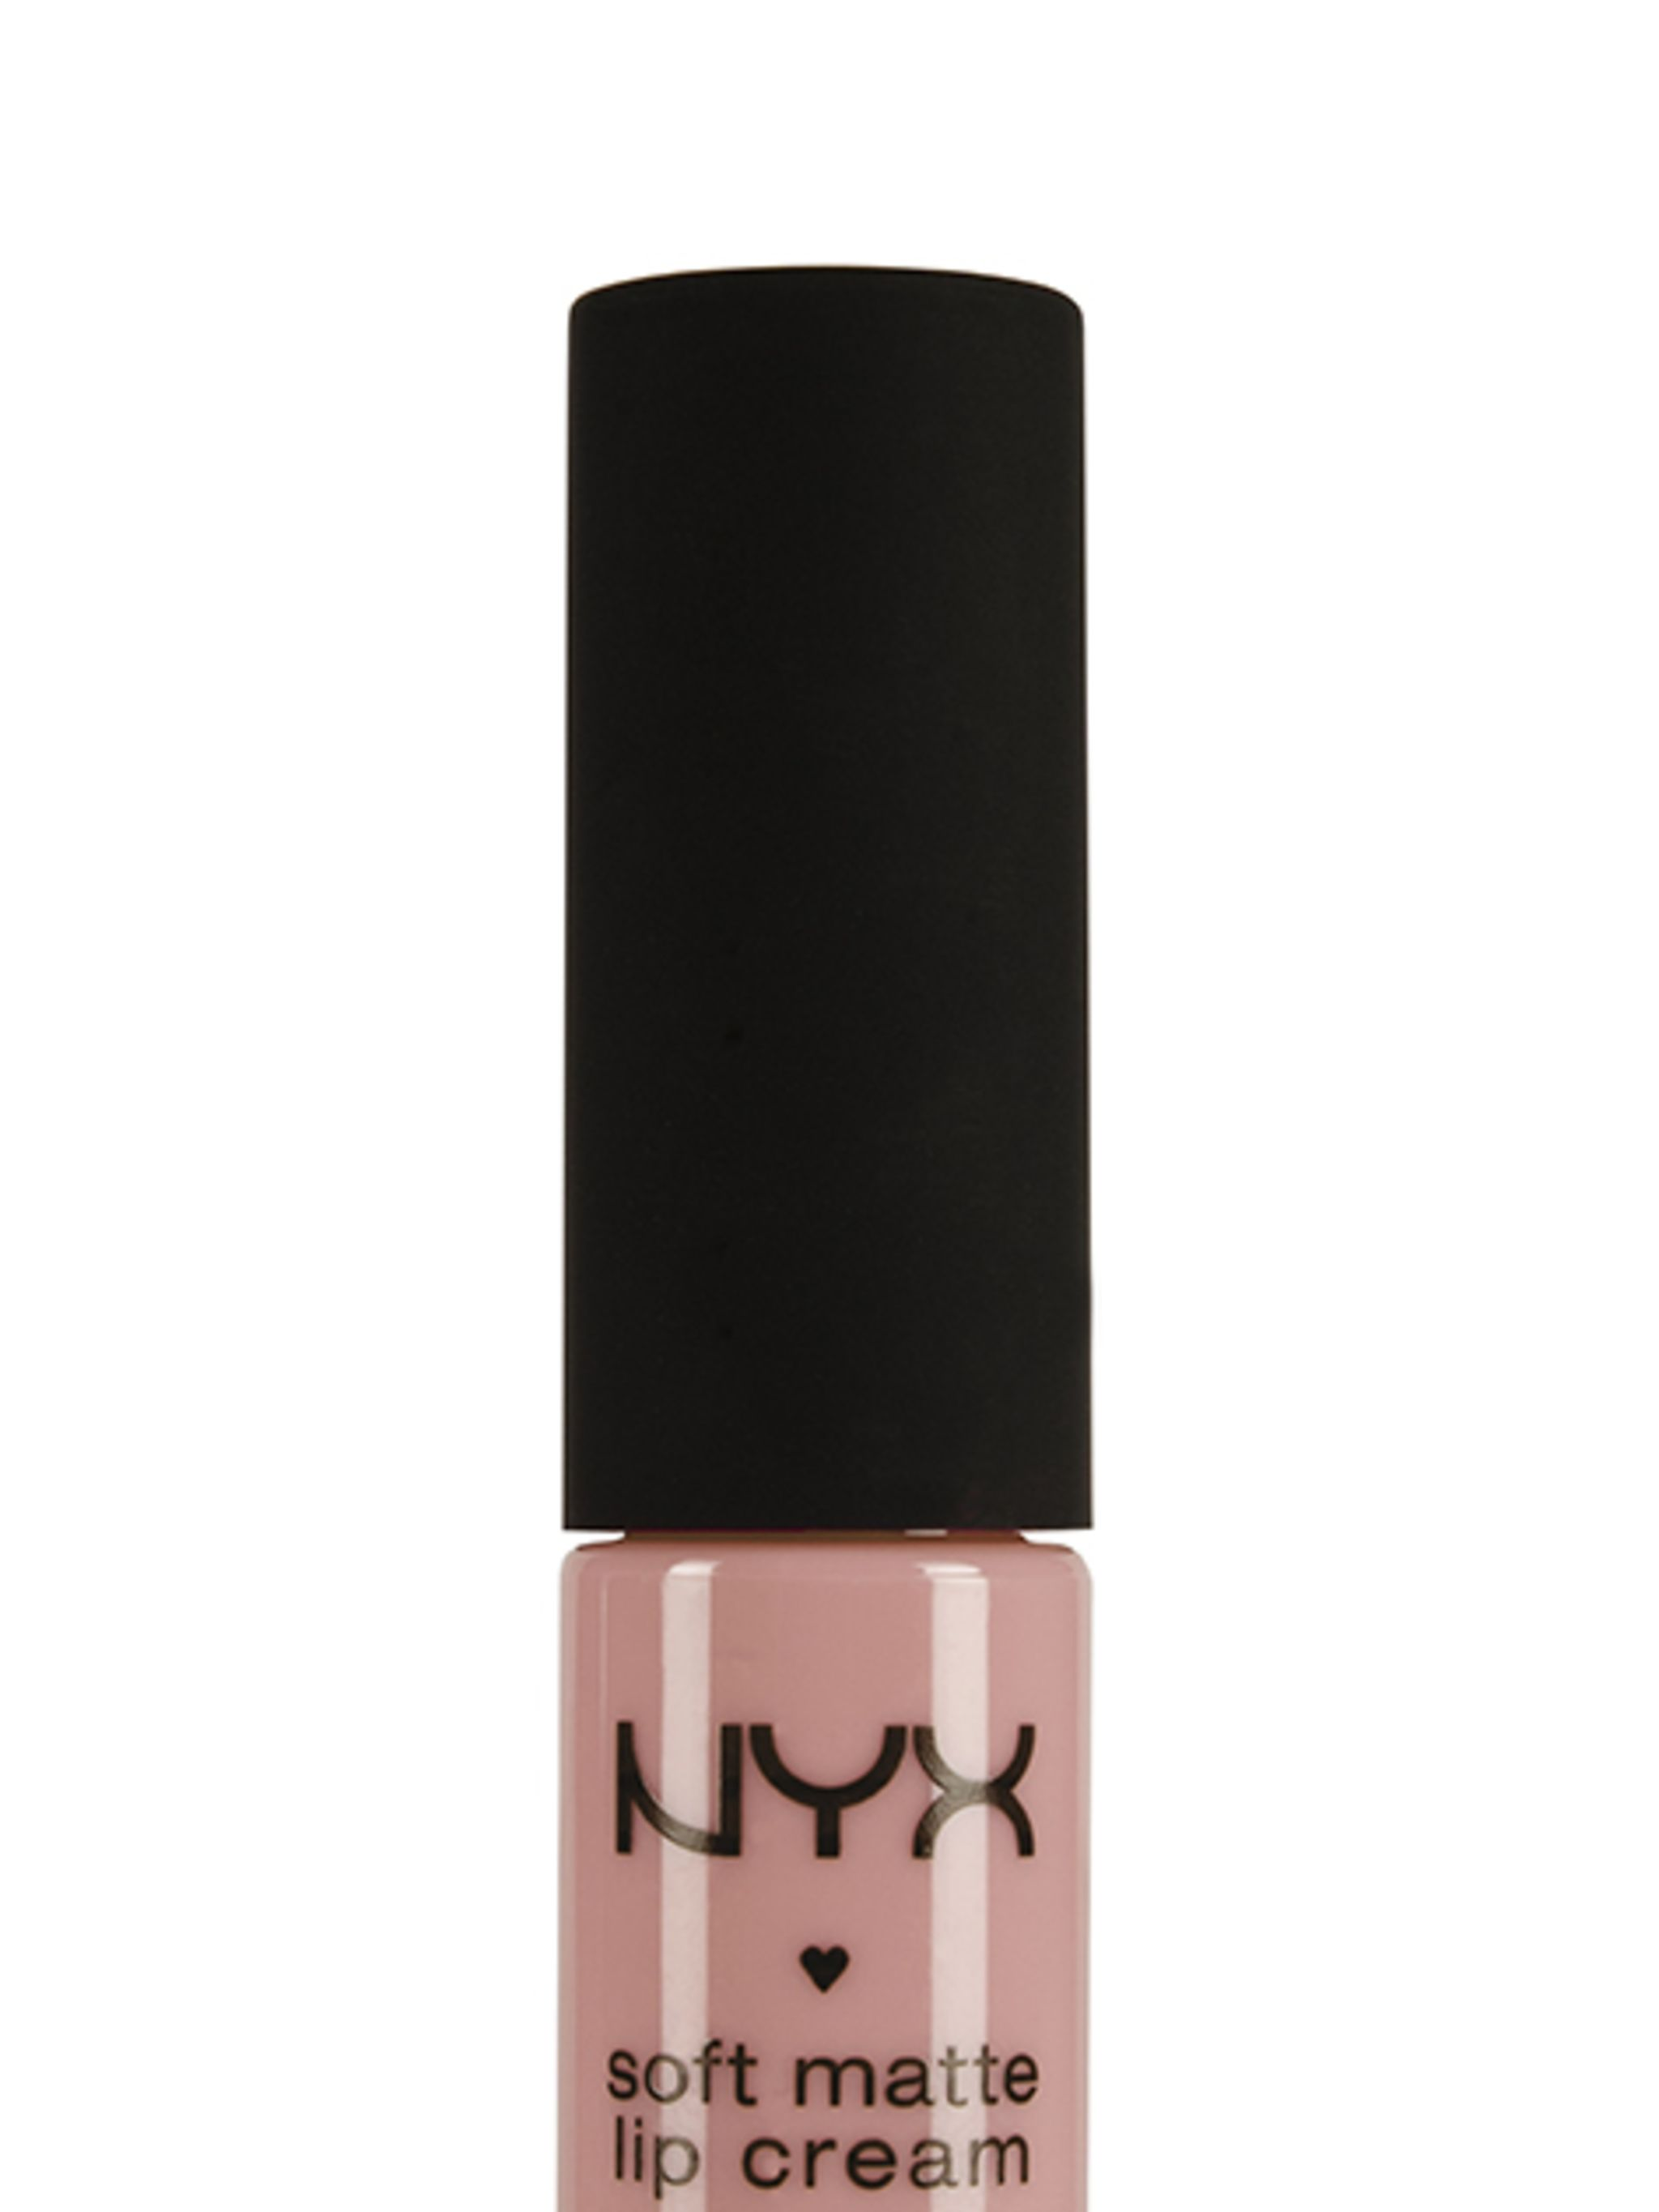 """<p>Lulu Cooper, Fashion Intern</p>  <p><a href=""""http://www.boots.com/en/NYX-Soft-Matte-lip-cream-14g_1770625/"""" target=""""_blank"""">NYX Soft Matte Lip Cream in Stockholm, £5.50</a>.</p>  <p>'It's easy to apply and doesn't dry out the way I've found some other"""